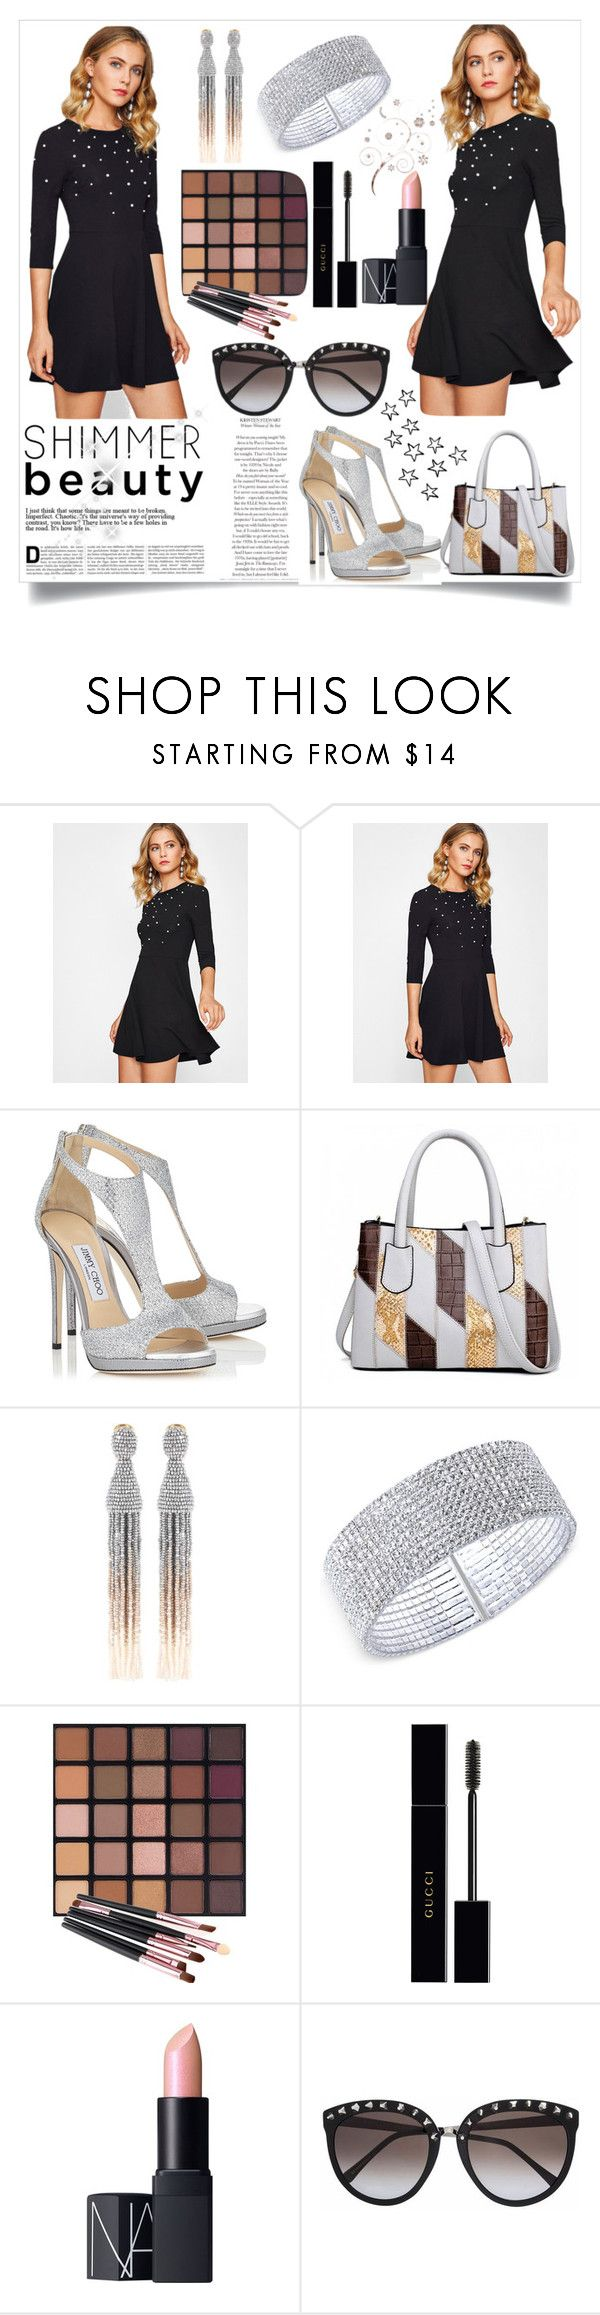 """""""Wonderfully!! 2"""" by emypoyvore ❤ liked on Polyvore featuring Jimmy Choo, Oscar de la Renta, Anne Klein, Gucci and NARS Cosmetics"""